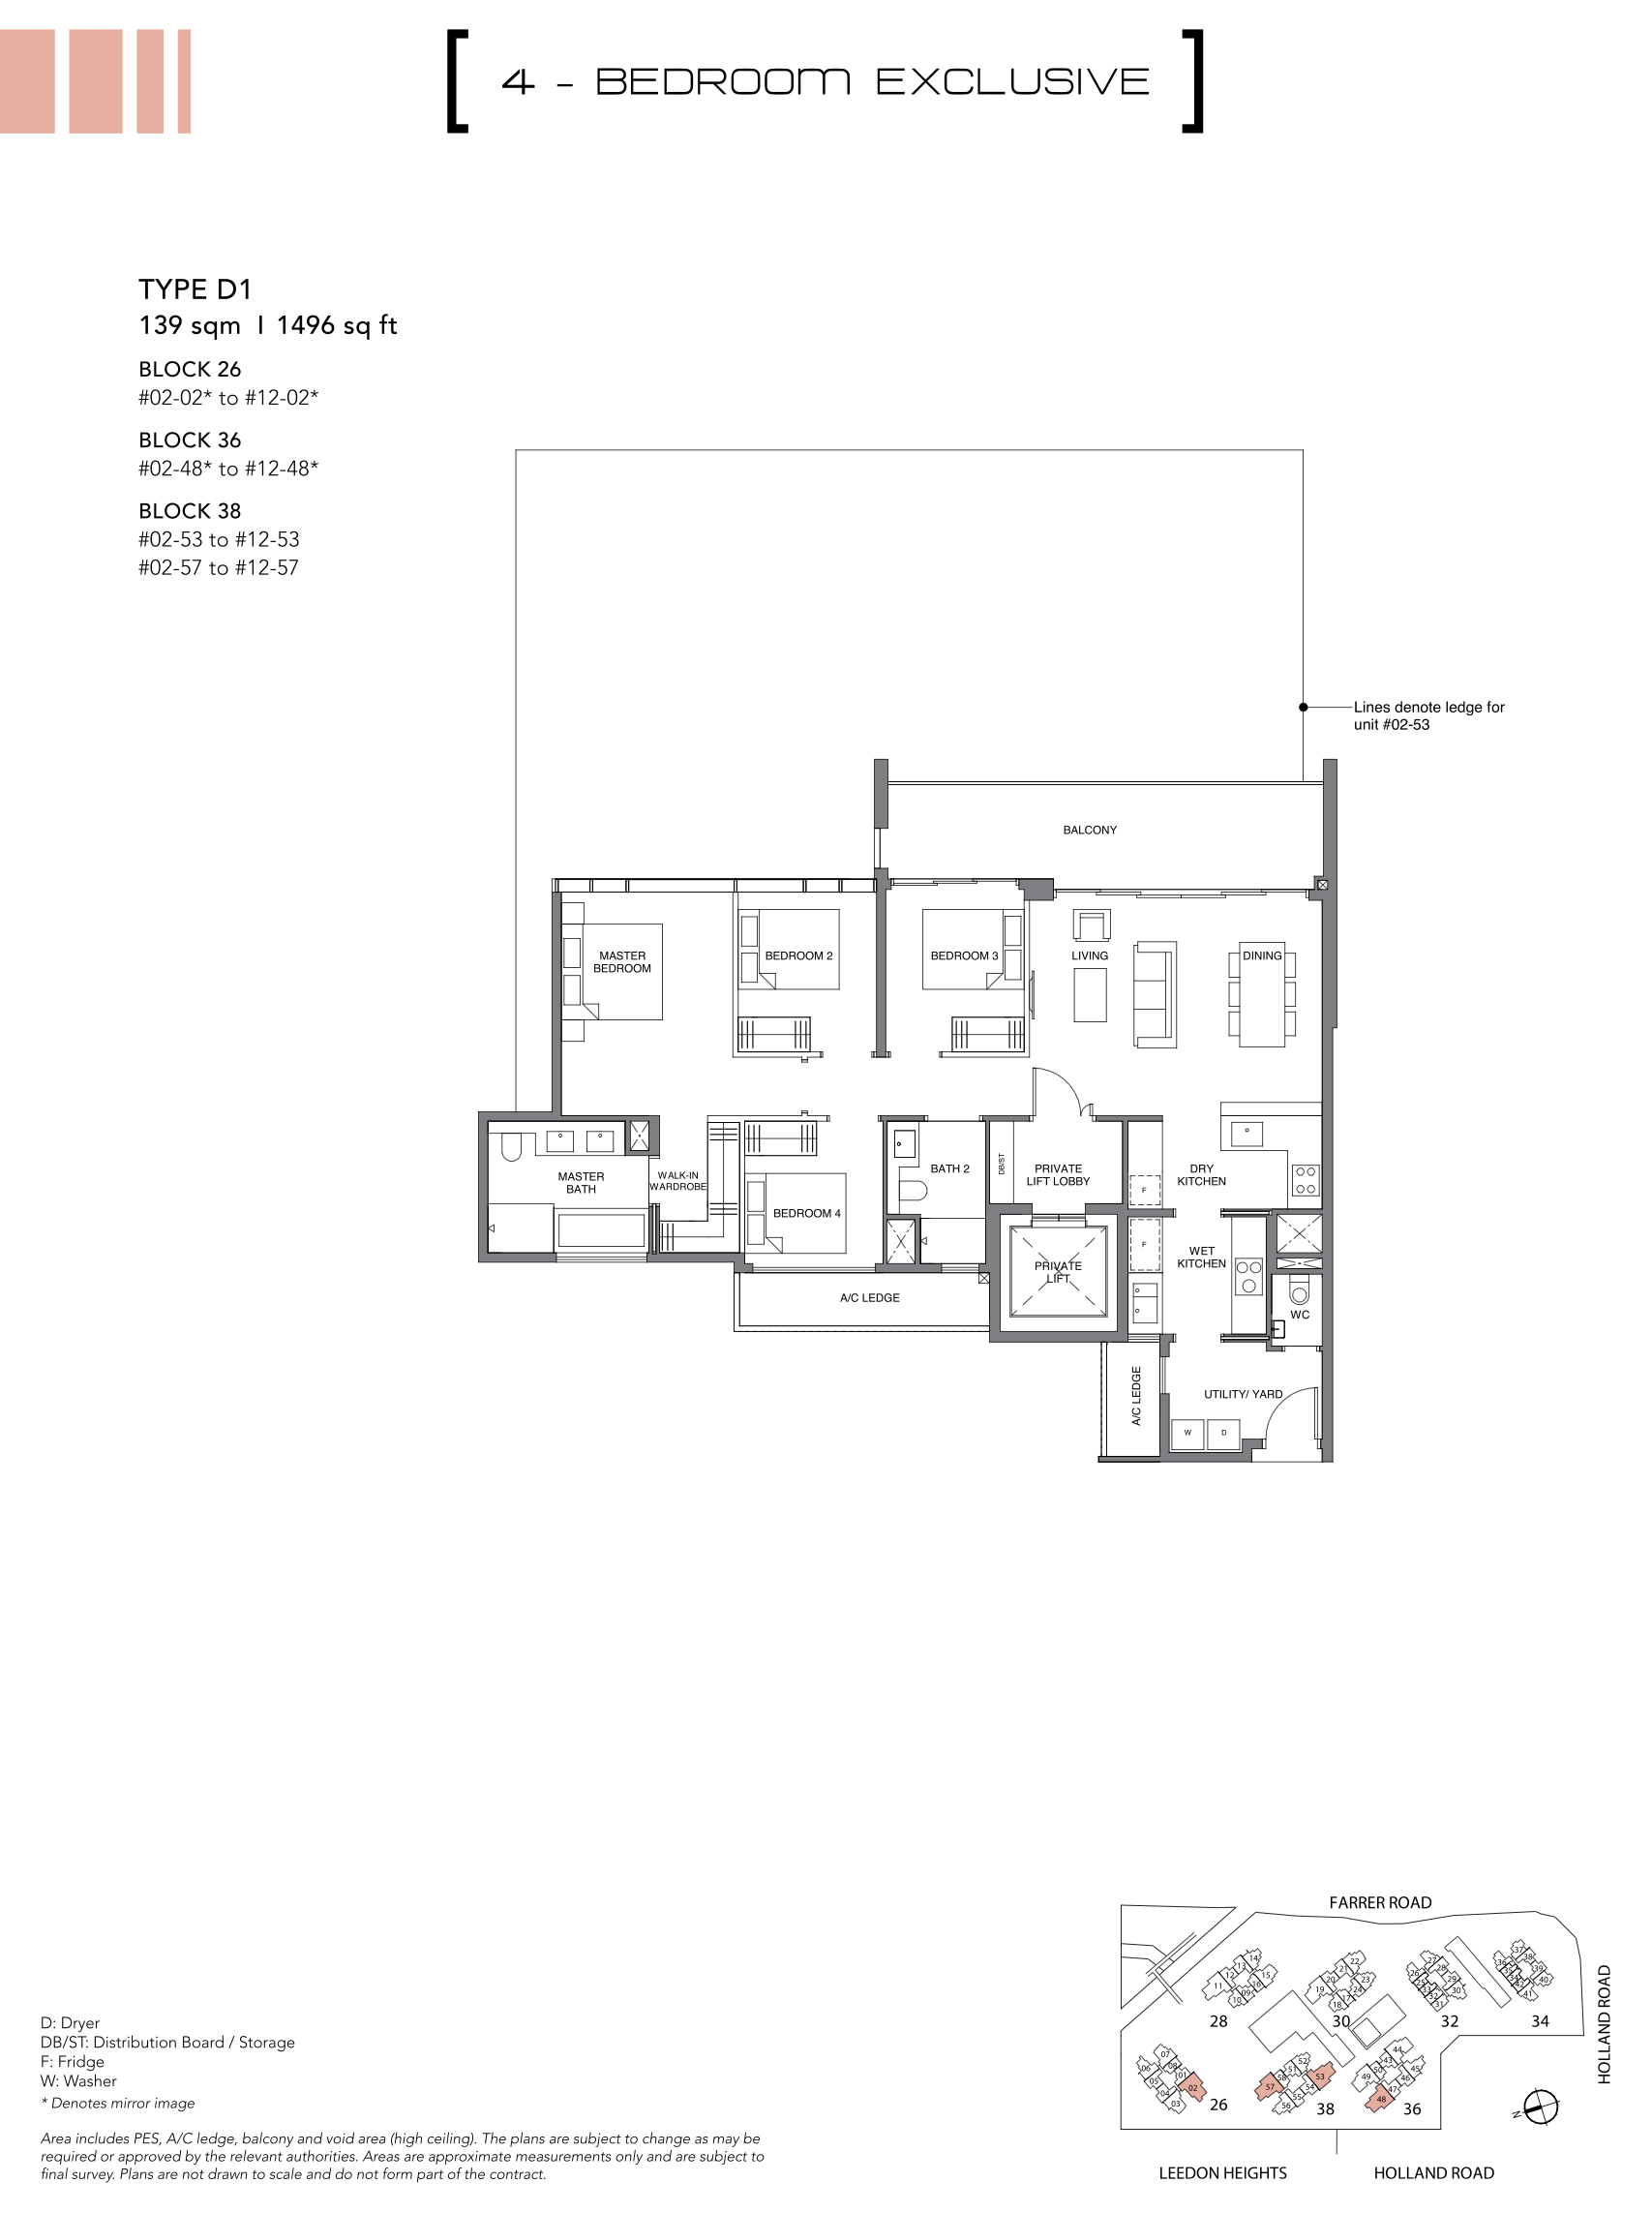 绿墩雅苑公寓户型图 Leedon Green floor plan 4 bedroom exclusive D1